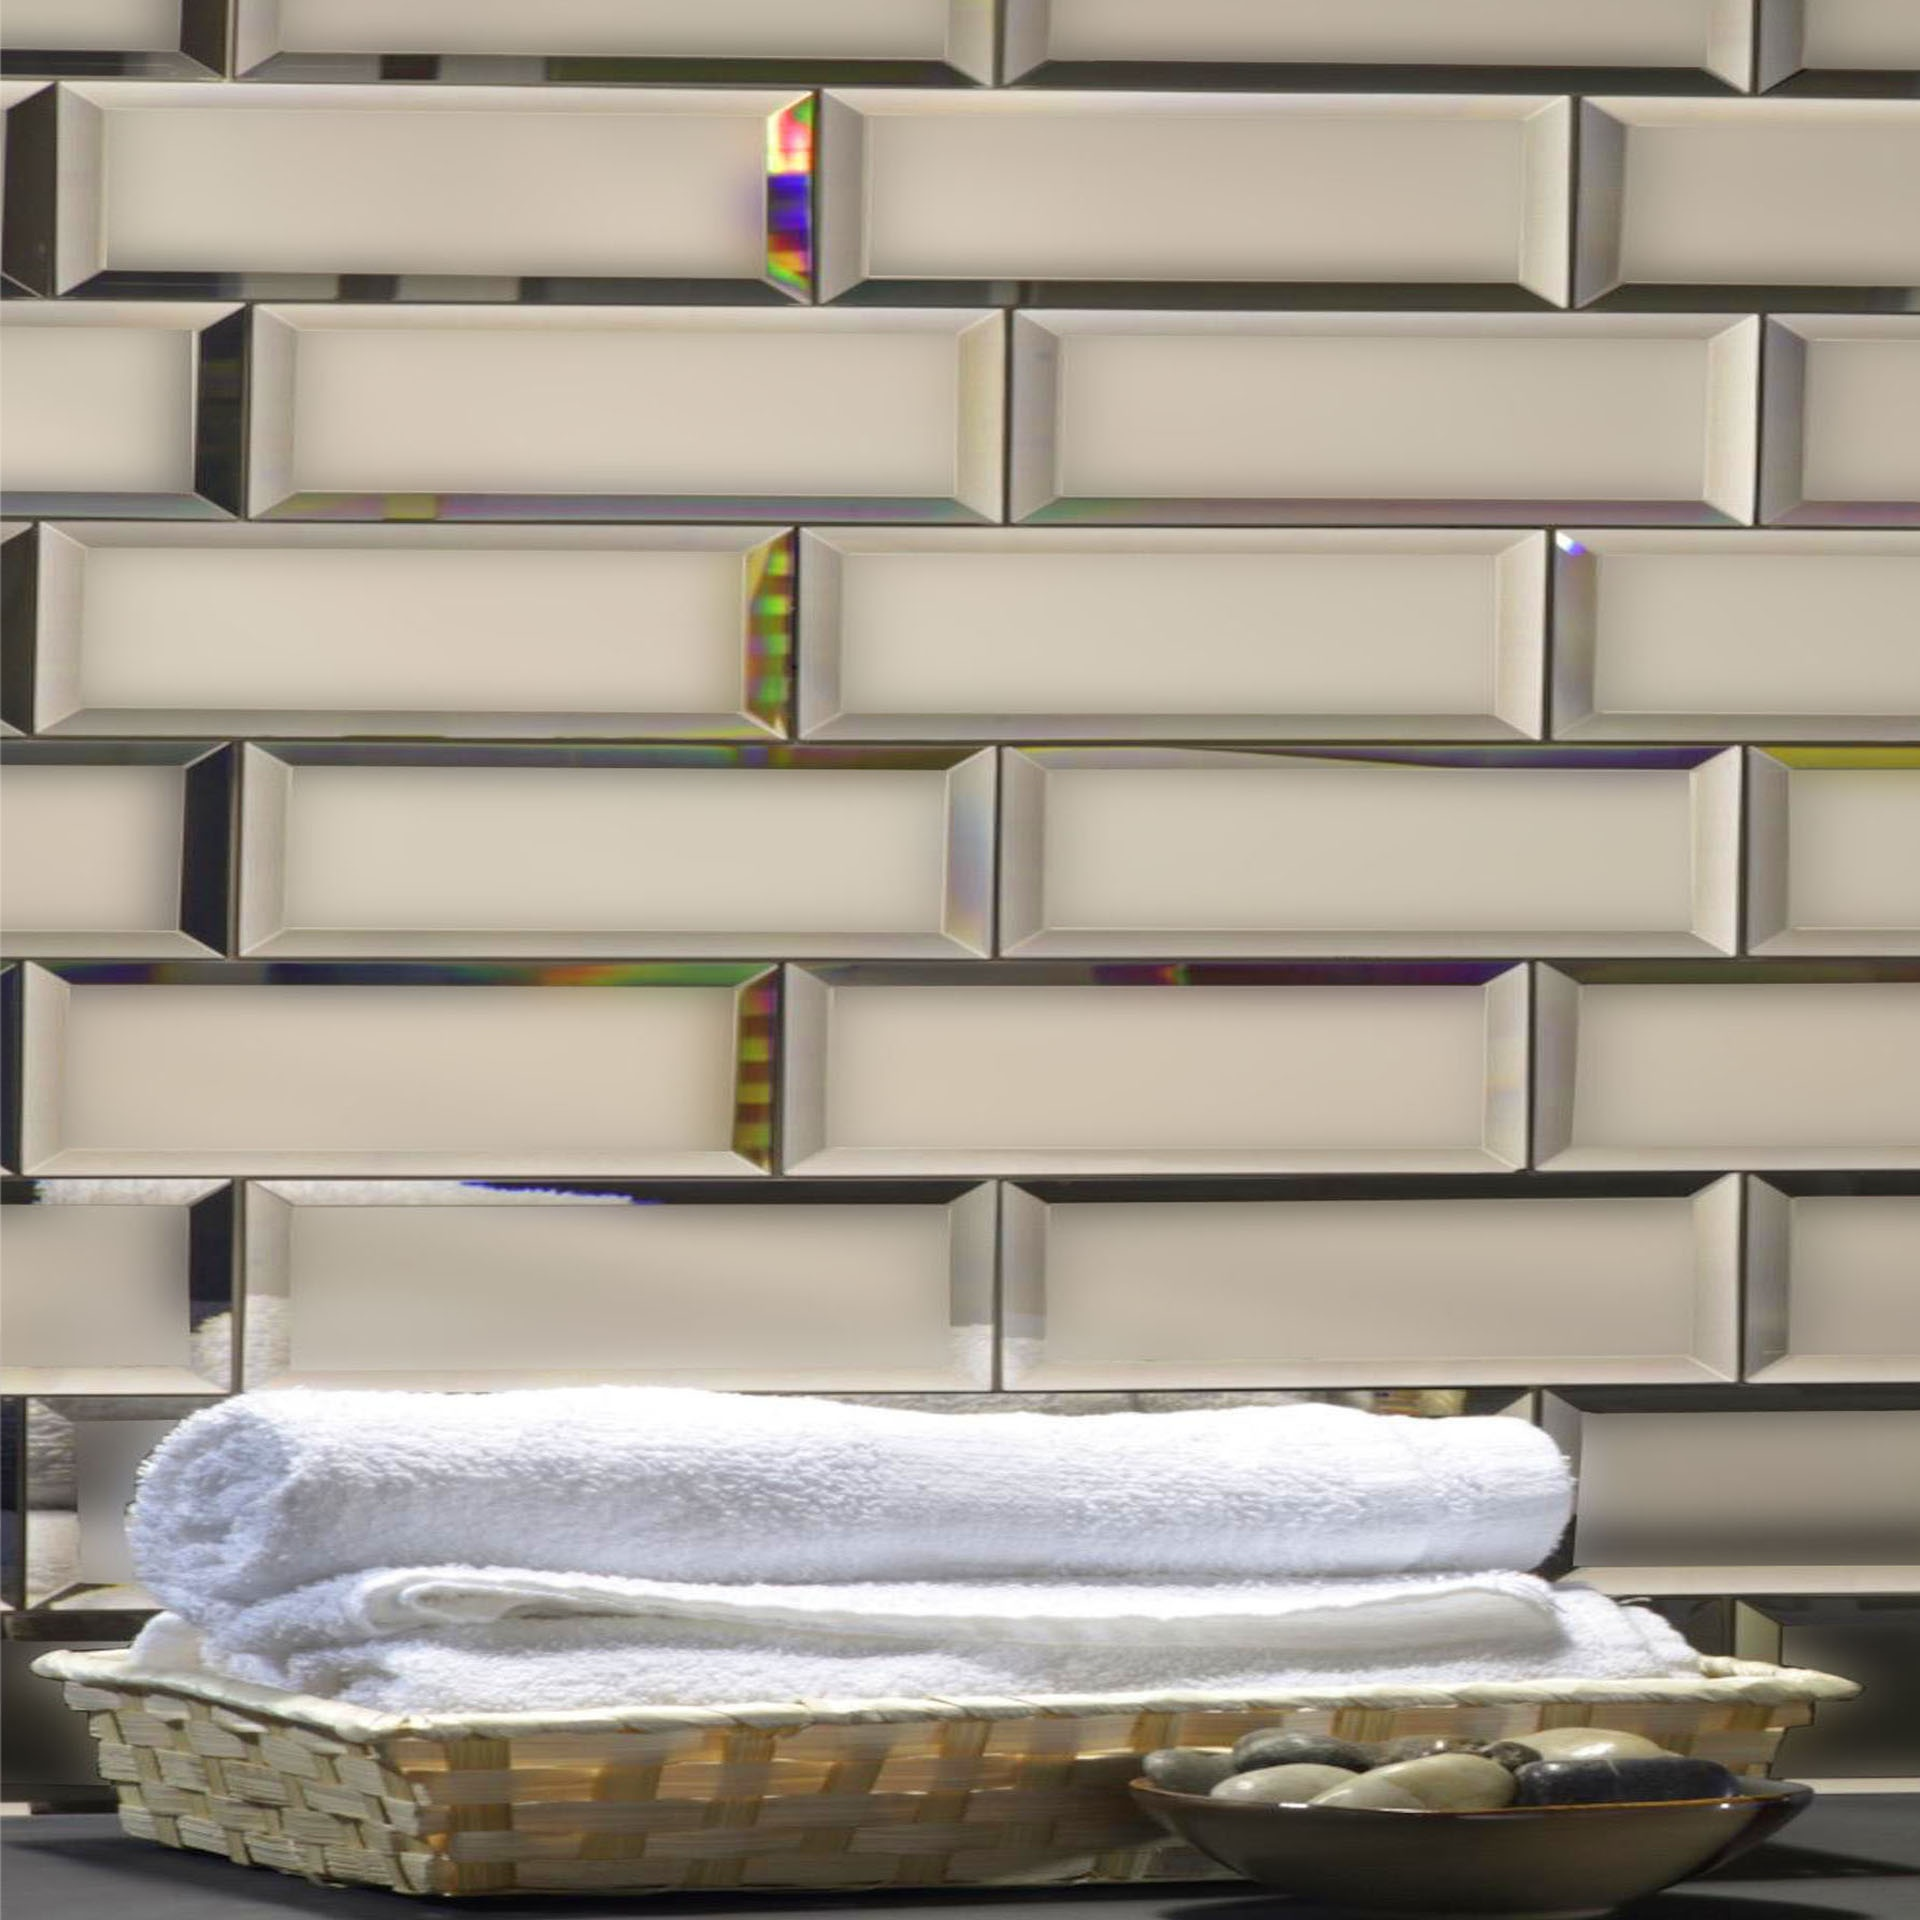 Reflections 3 in x 12 in Mirror Subway Tile in GOLD Matte